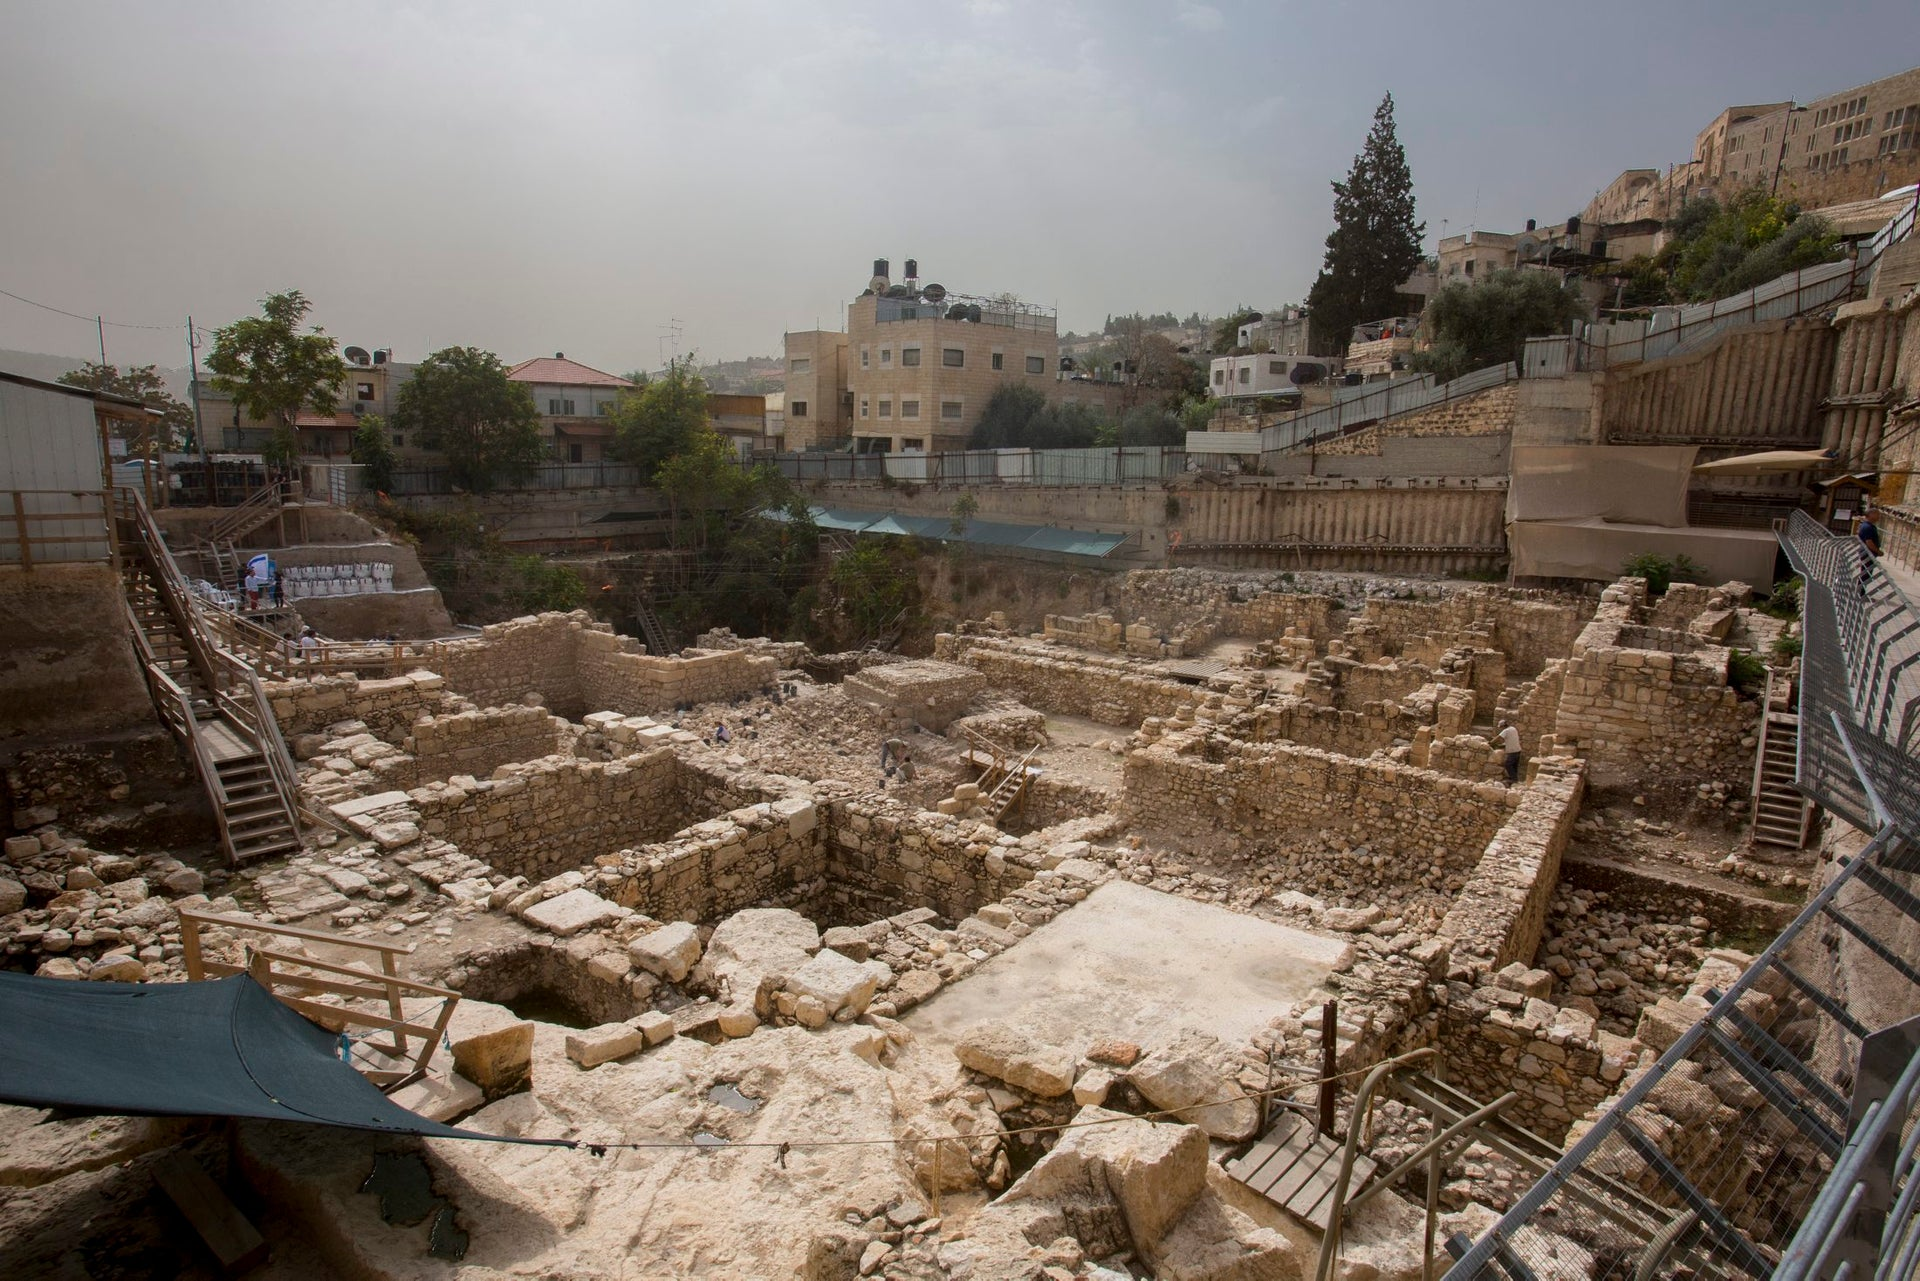 The 'City of David,' Jerusalem, below Temple Mount: Shown on backdrop of wintry sky, the photo shows extensive excavations and walls and rooms uncovered south of the Temple Mount. Behind them we see some modern residential buildings.